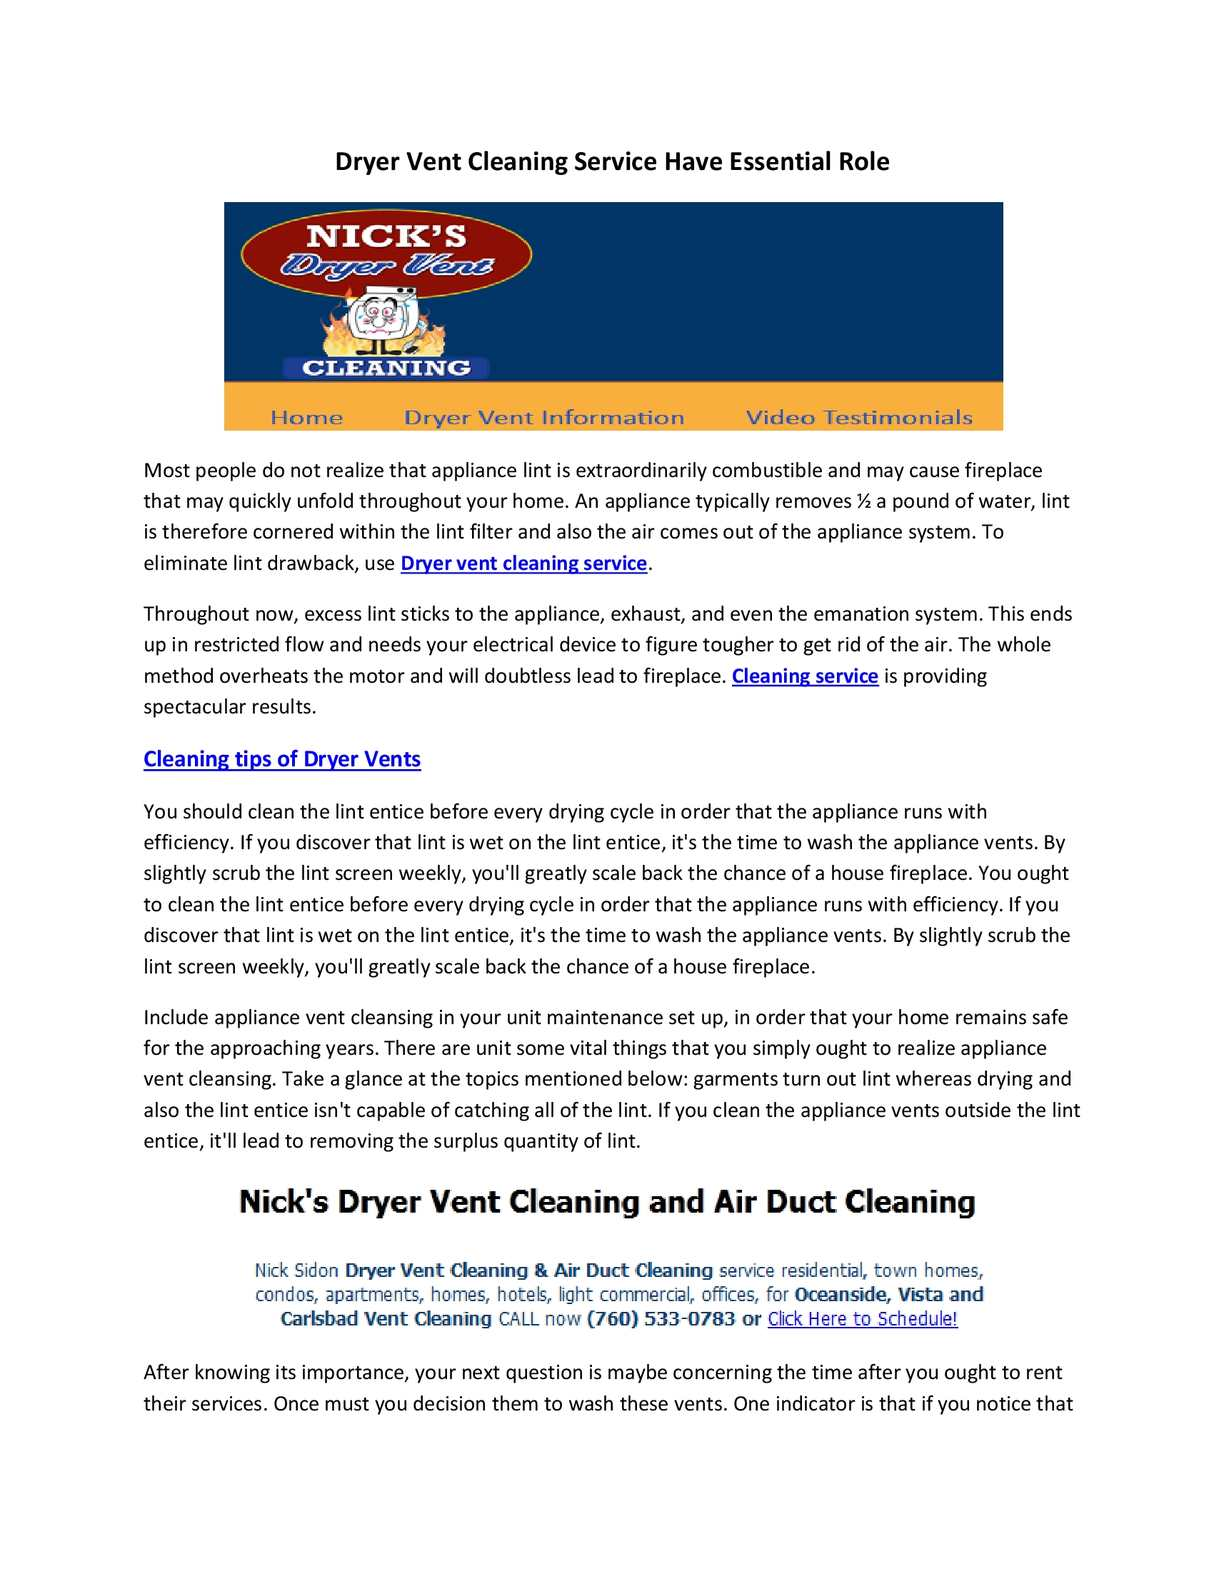 Calaméo   Dryer Vent Cleaning Service Have Essential Role